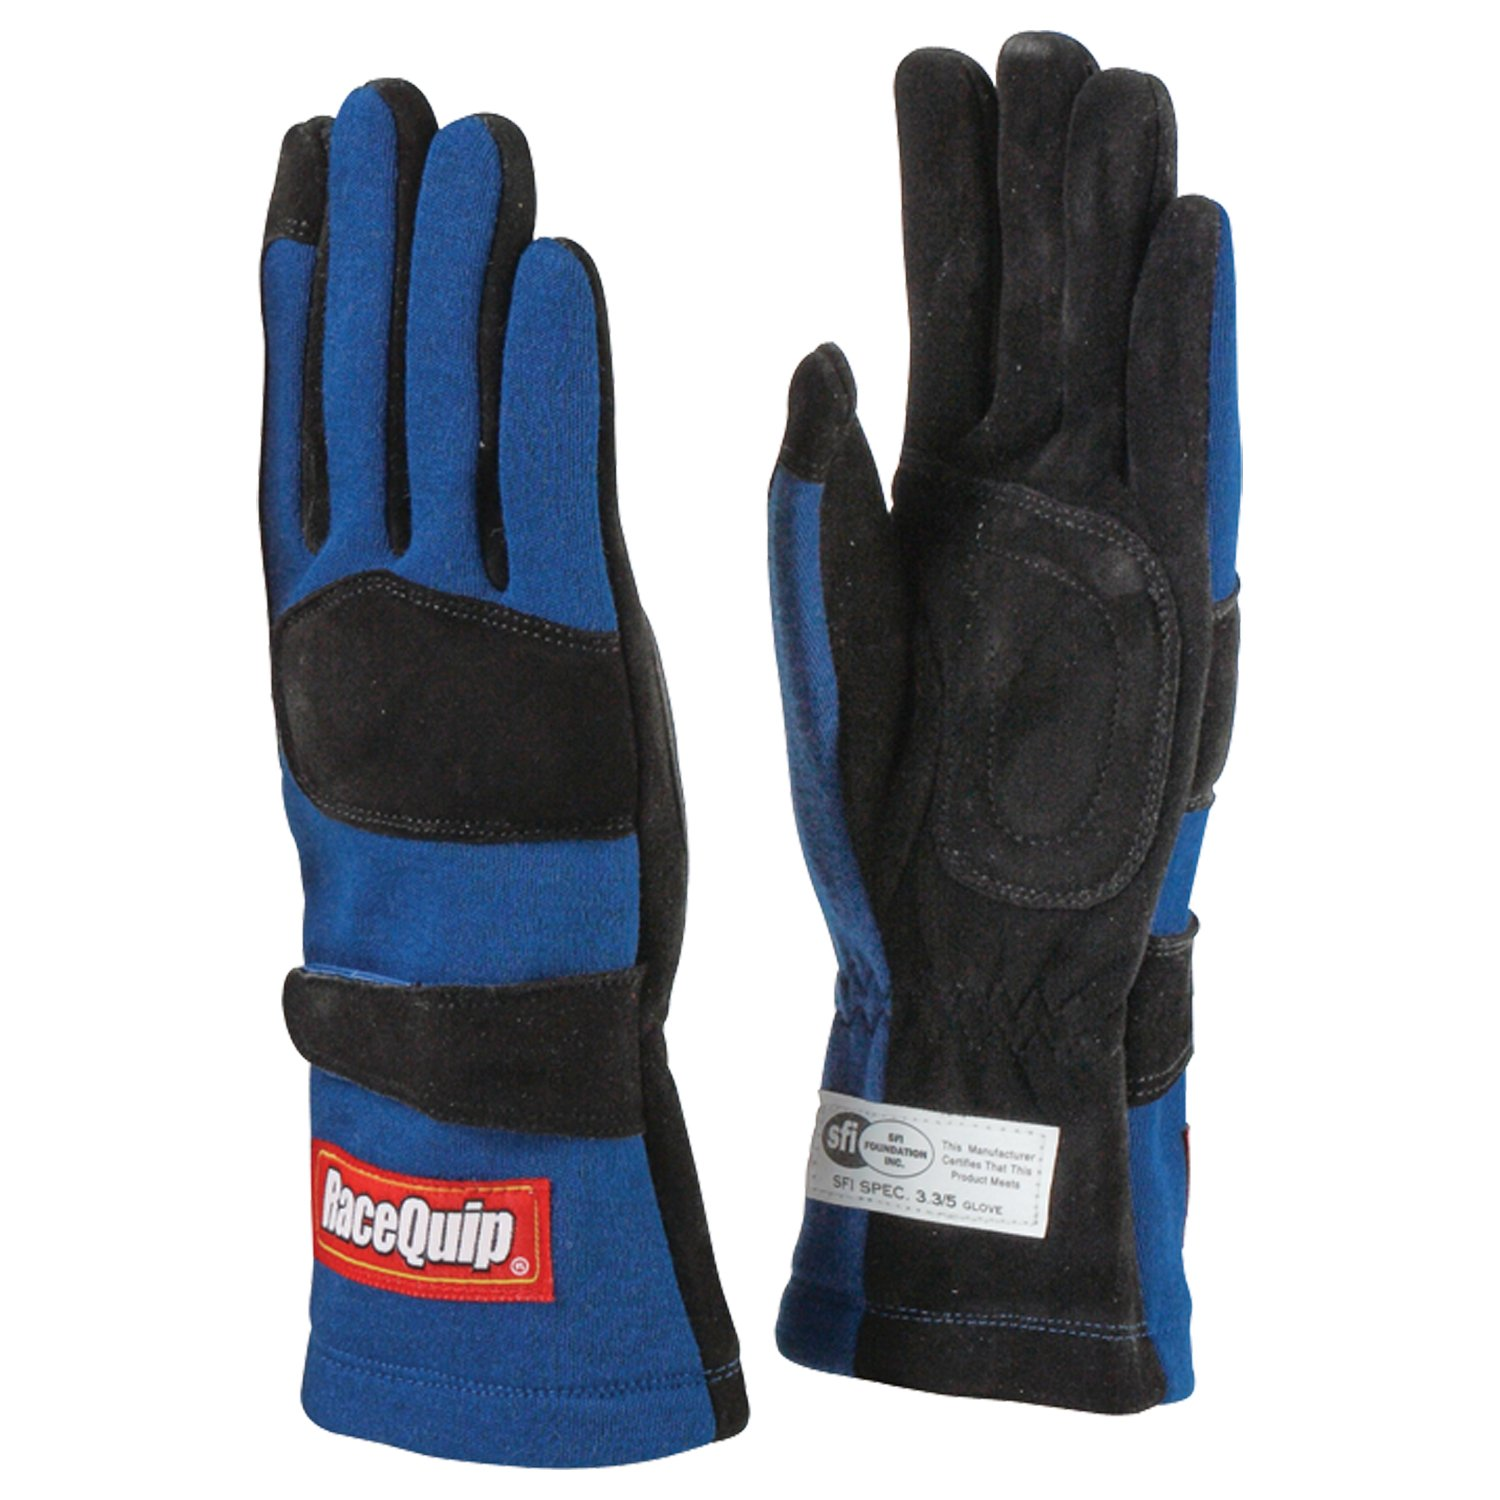 RaceQuip 355025 355 Series Large Blue SFI 3.3/5 Two Layer Racing Gloves